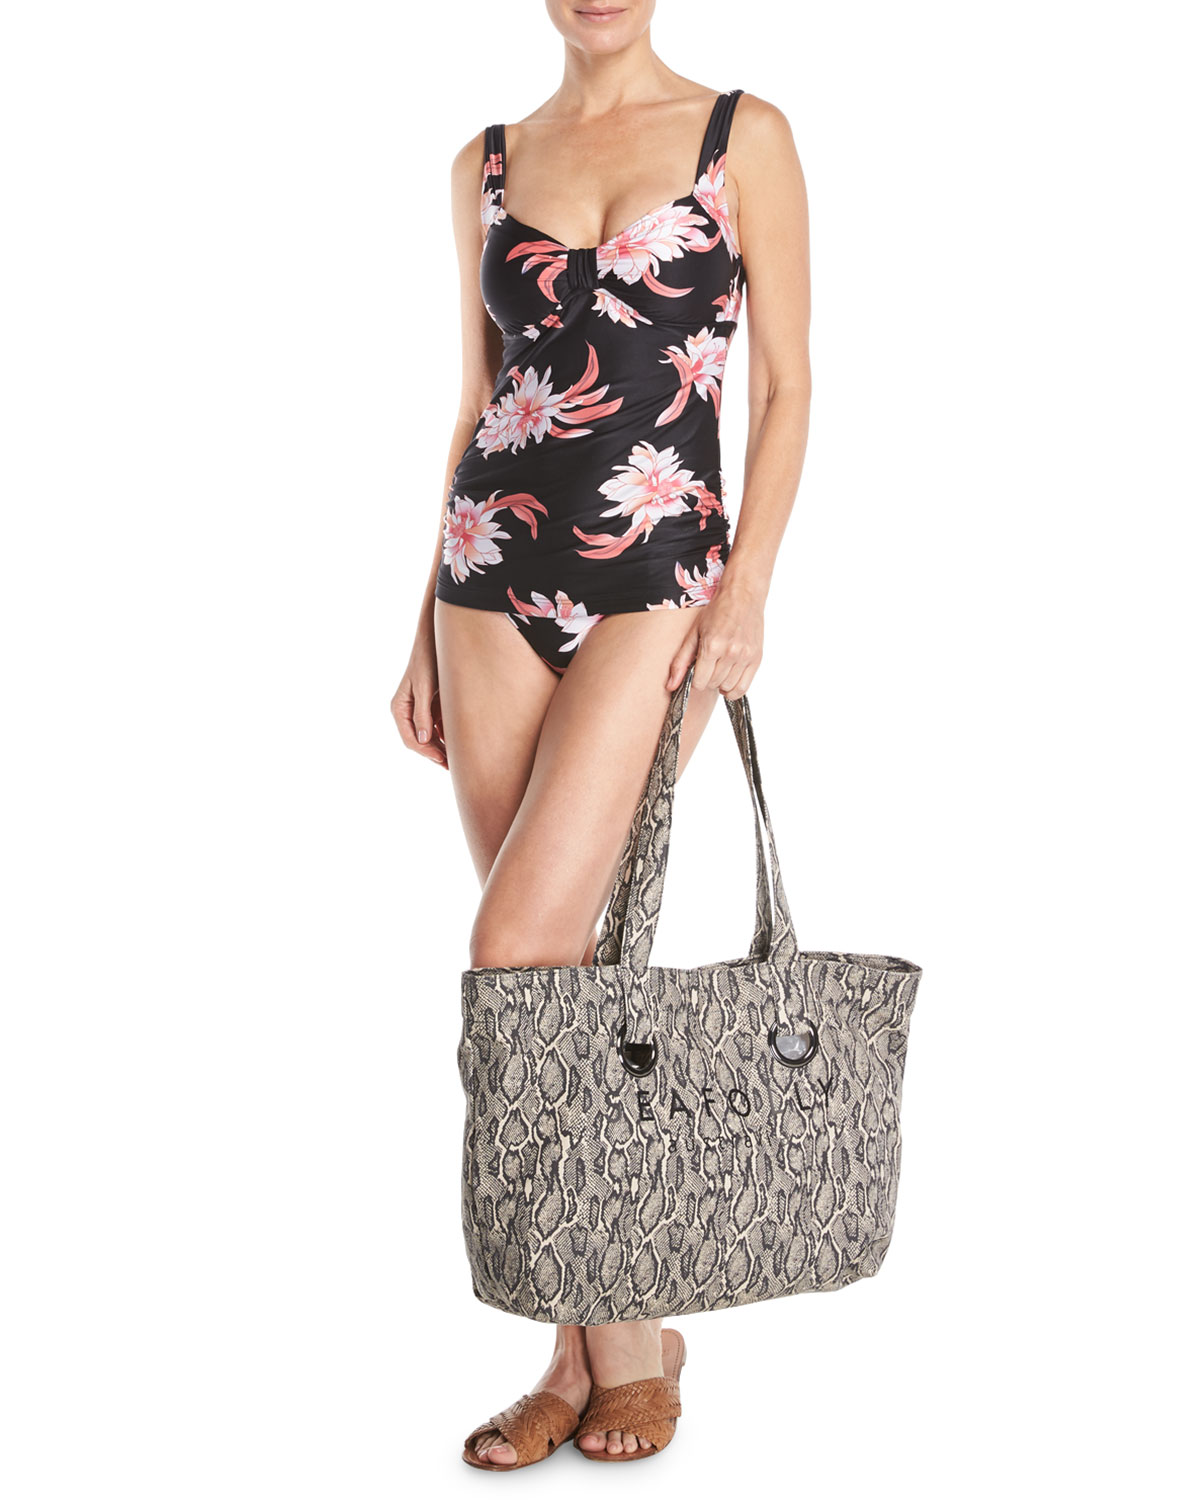 Carried Away Luxe Eyelet Beach Tote Bag